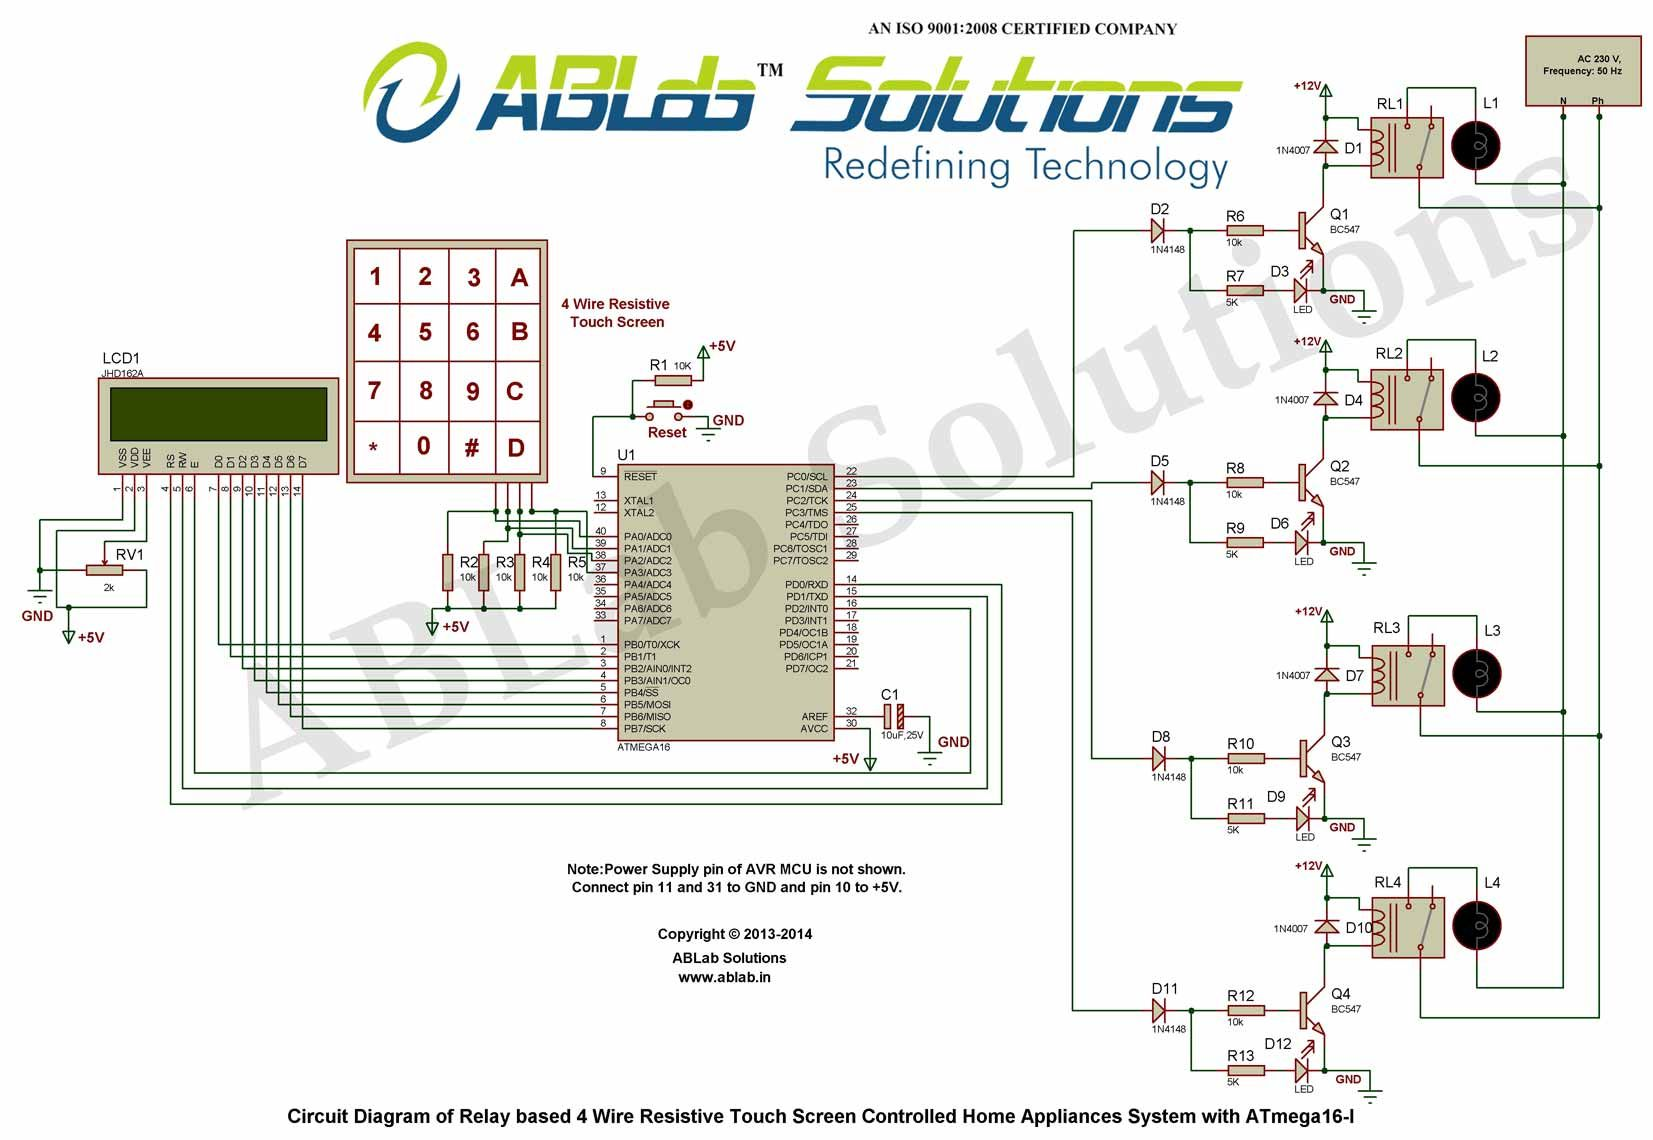 relay based 4 wire resistive touch screen controlled home appliances refrigerator wiring diagrams relay based 4 wire resistive touch screen controlled circuit diagramhome